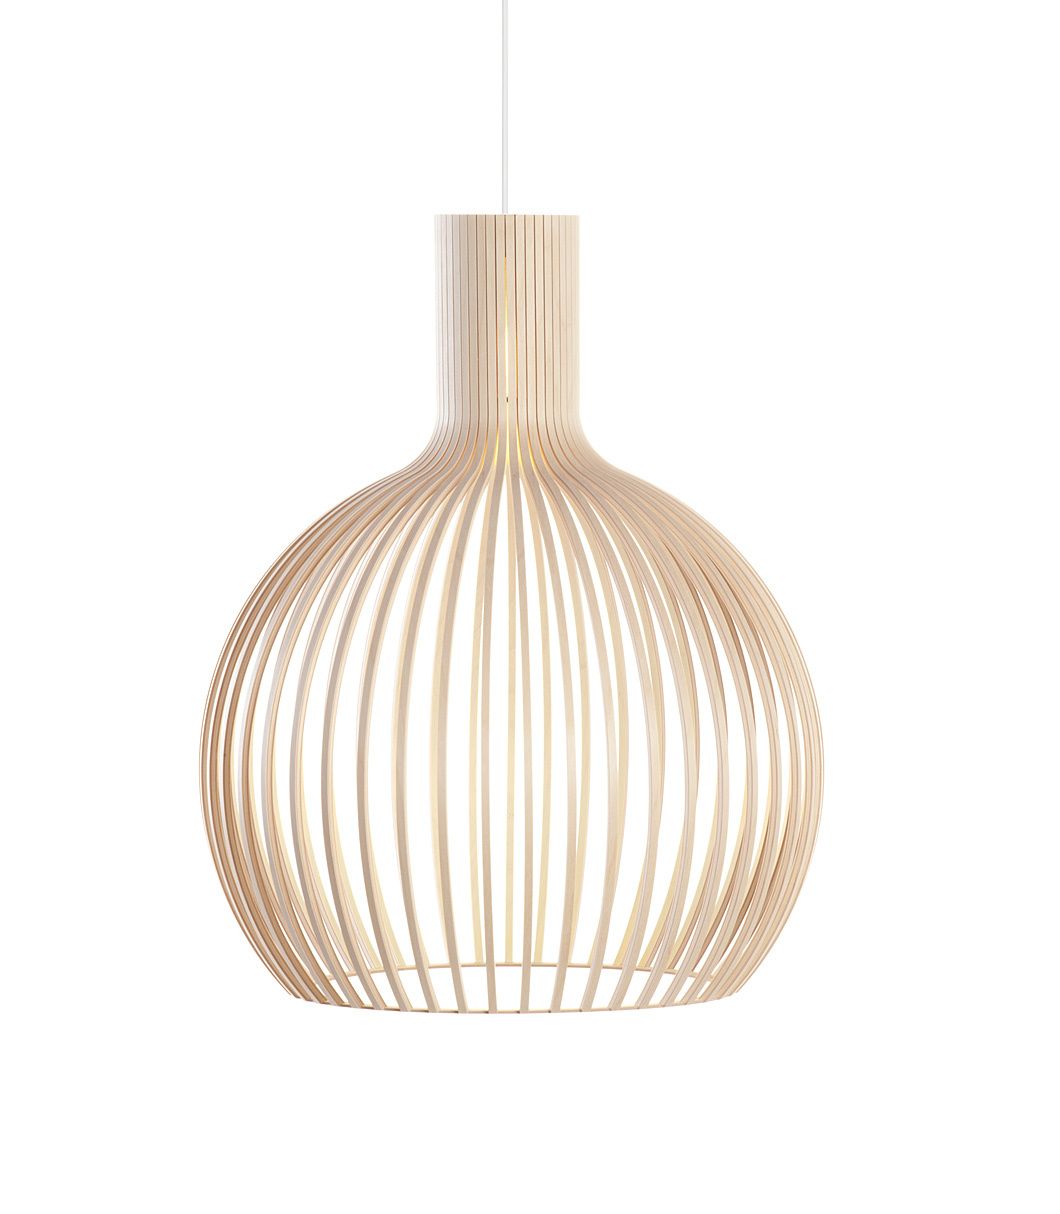 Hedendaags Octo 4240 wooden modern pendant lamp Secto Design | Secto Design TD-94